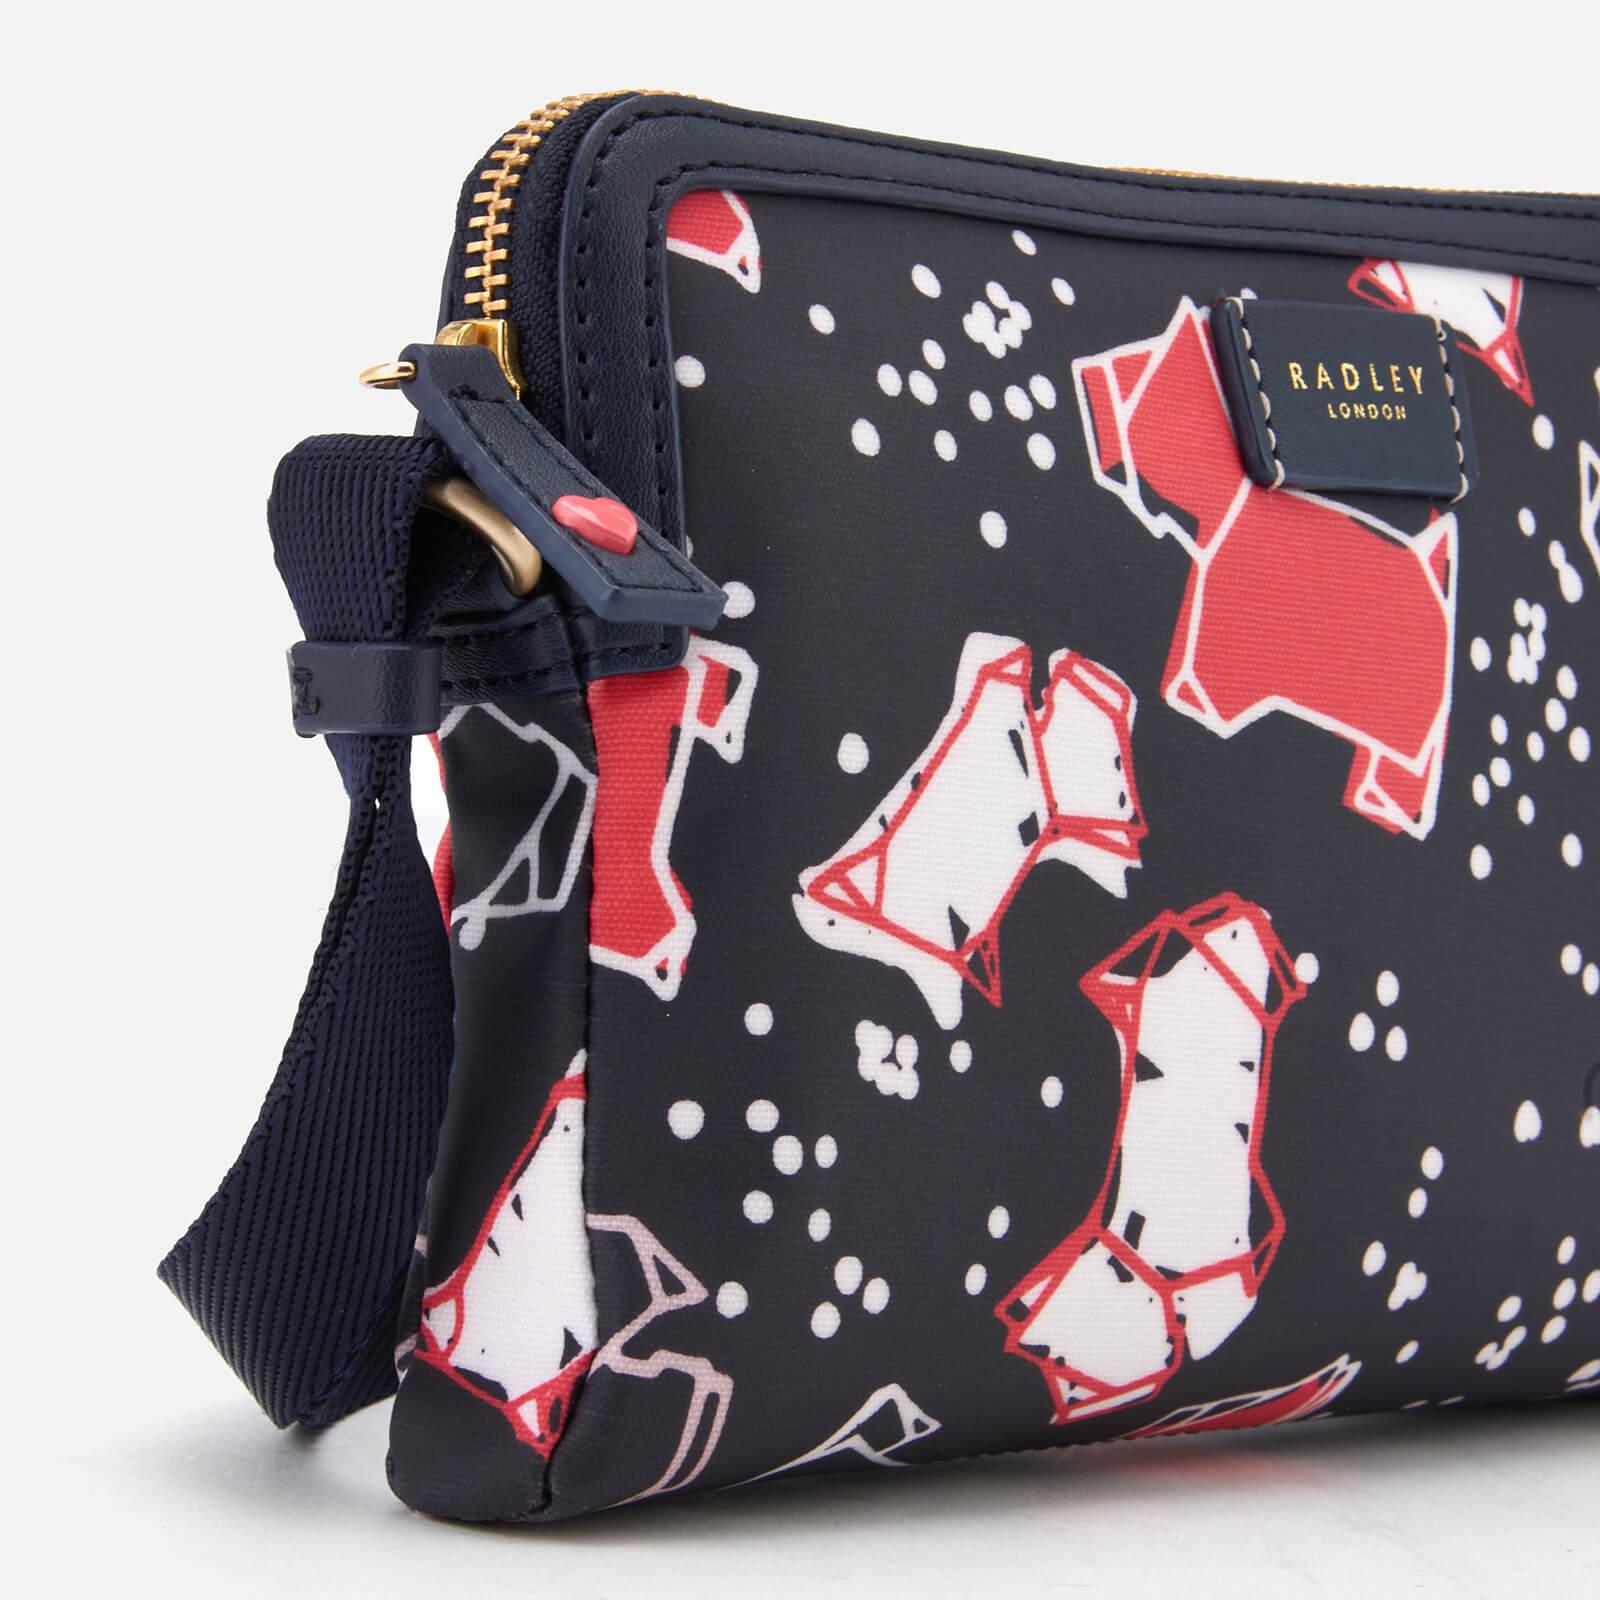 Radley Cotton Speckle Dog Small Zip-top Cross Body Bag